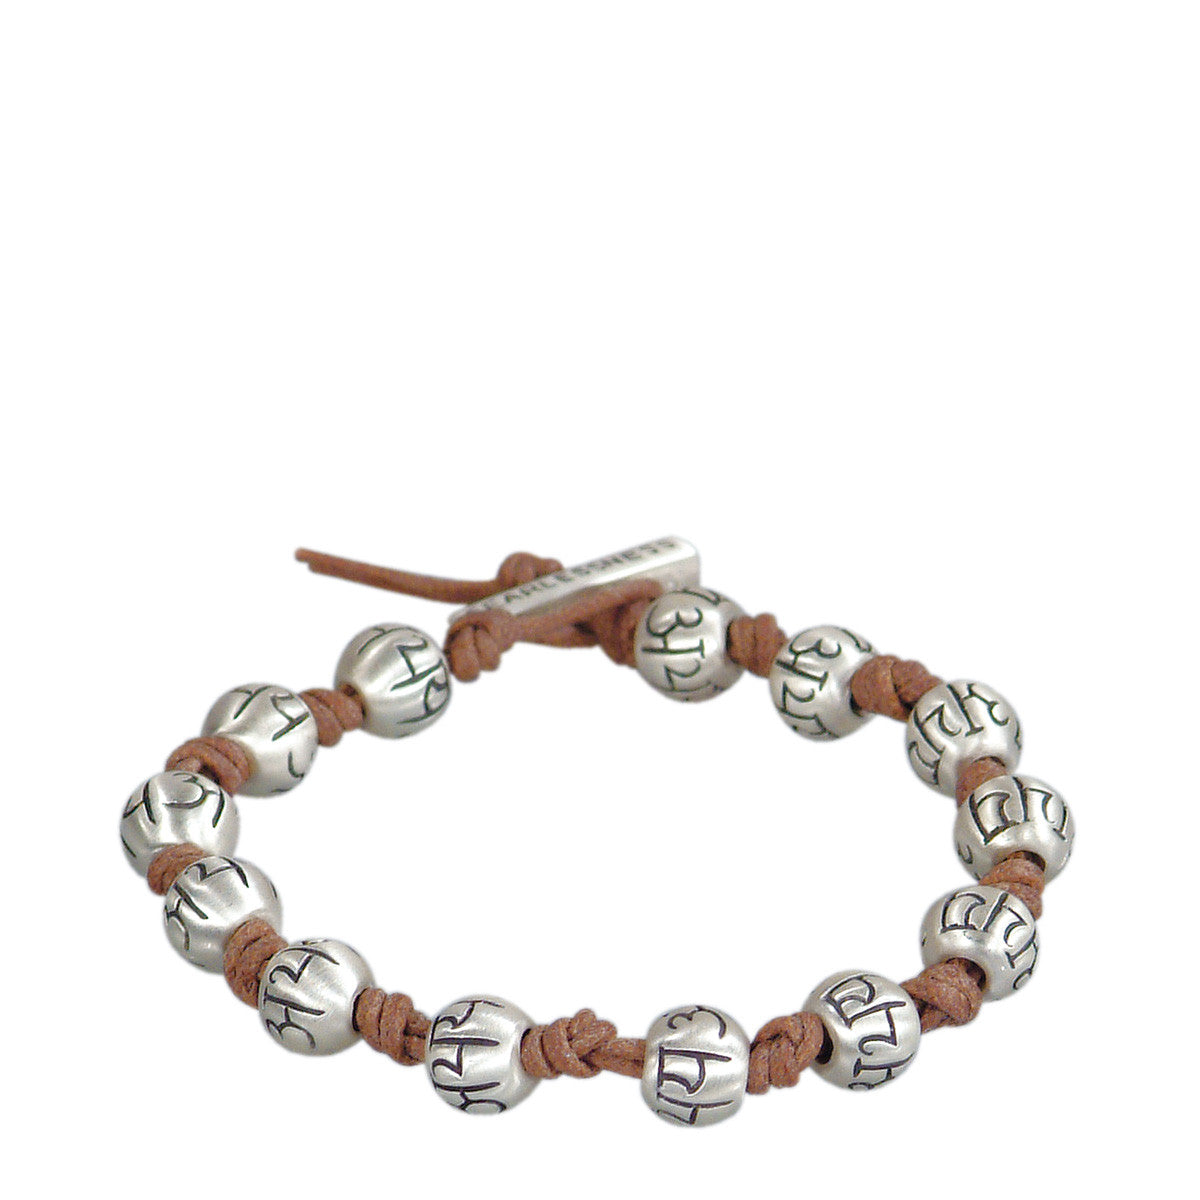 Men's Sterling Silver Full Fearlessness Bead Bracelet on Natural Cord